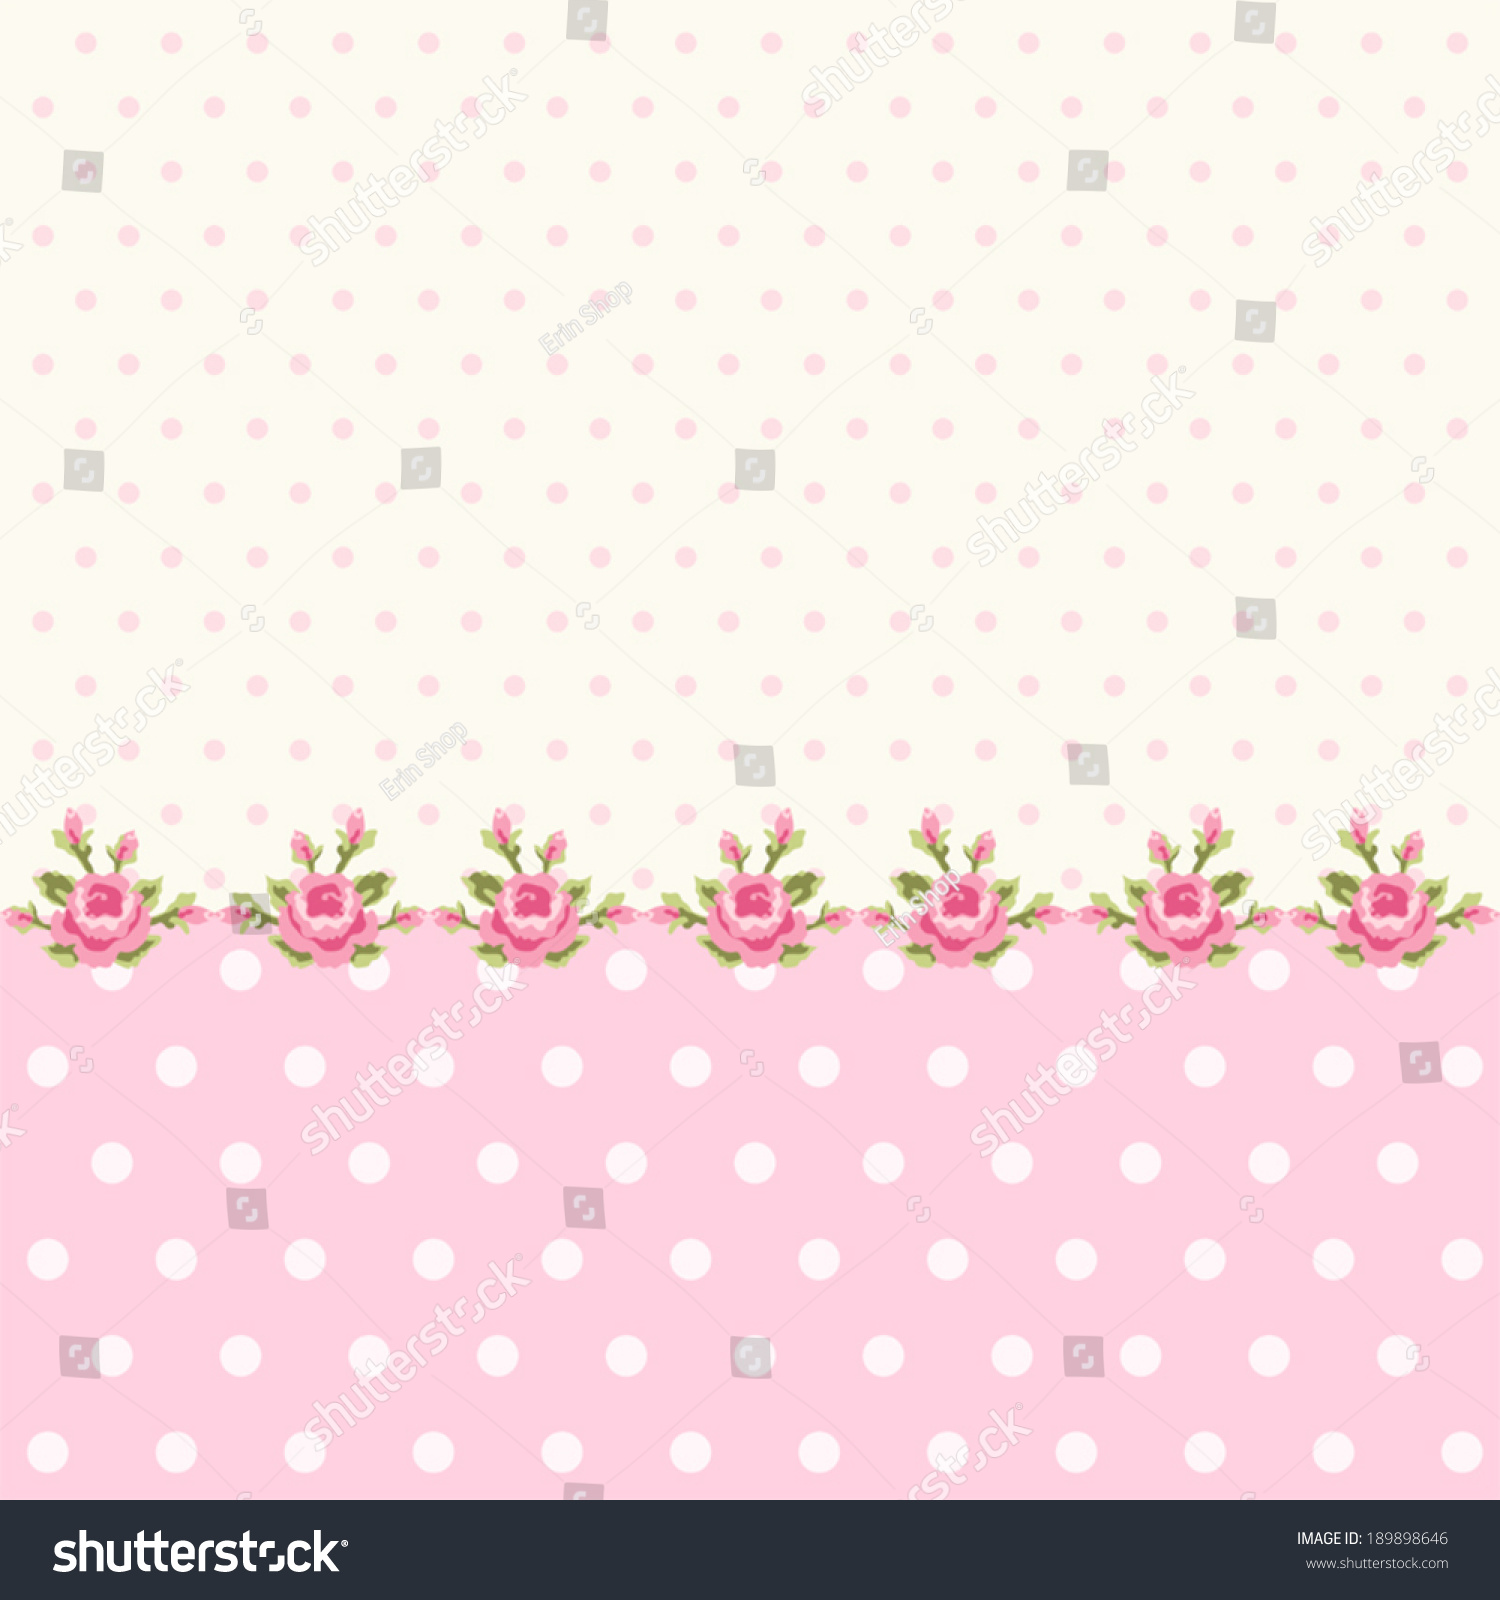 Vintage Polka Dots Background With Border Of Roses In Shabby Chic Style 189898646